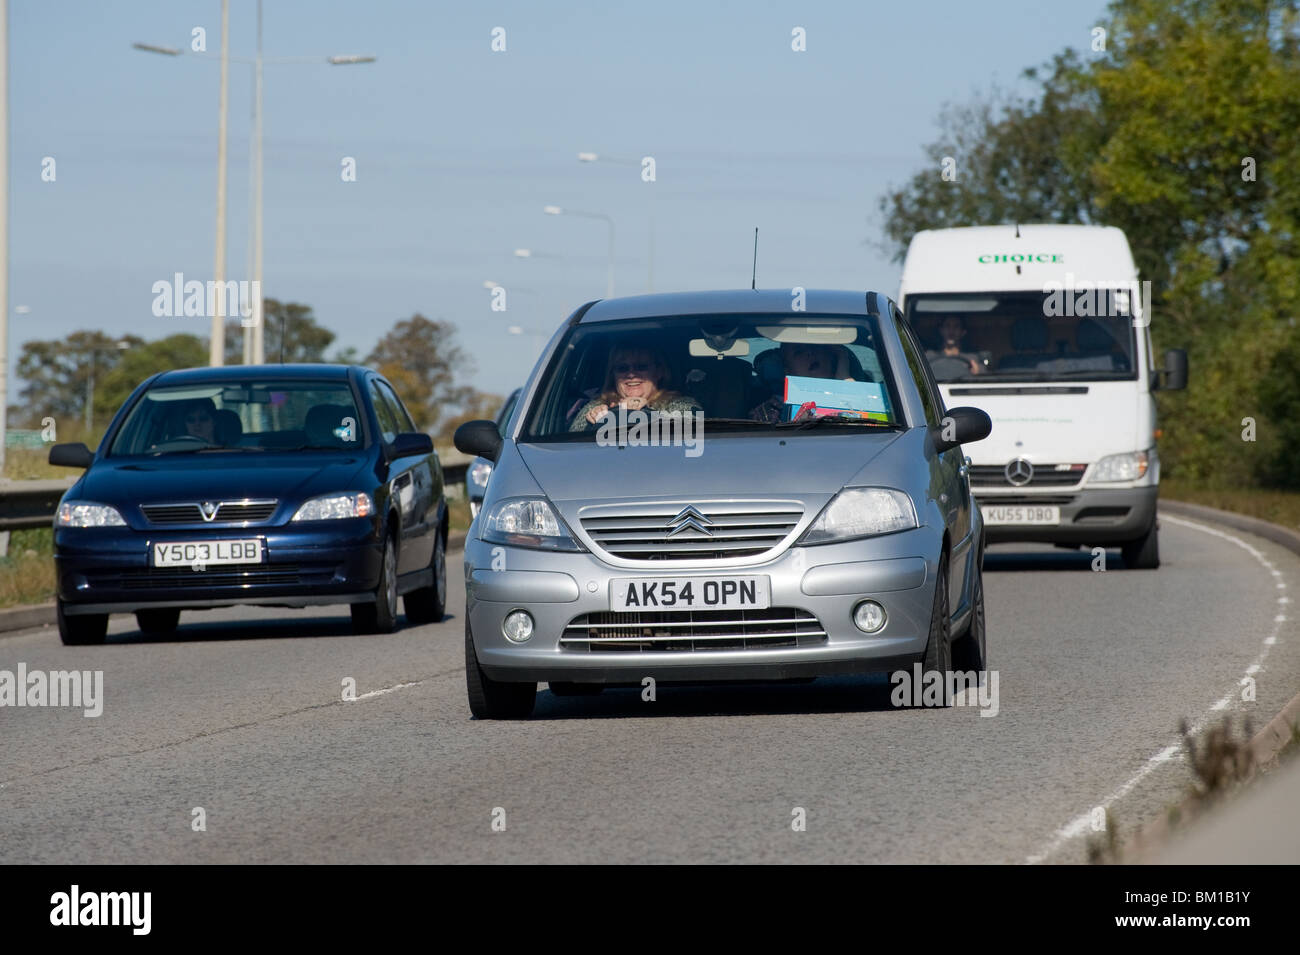 Traffic on a busy dual carriageway, uk england - Stock Image